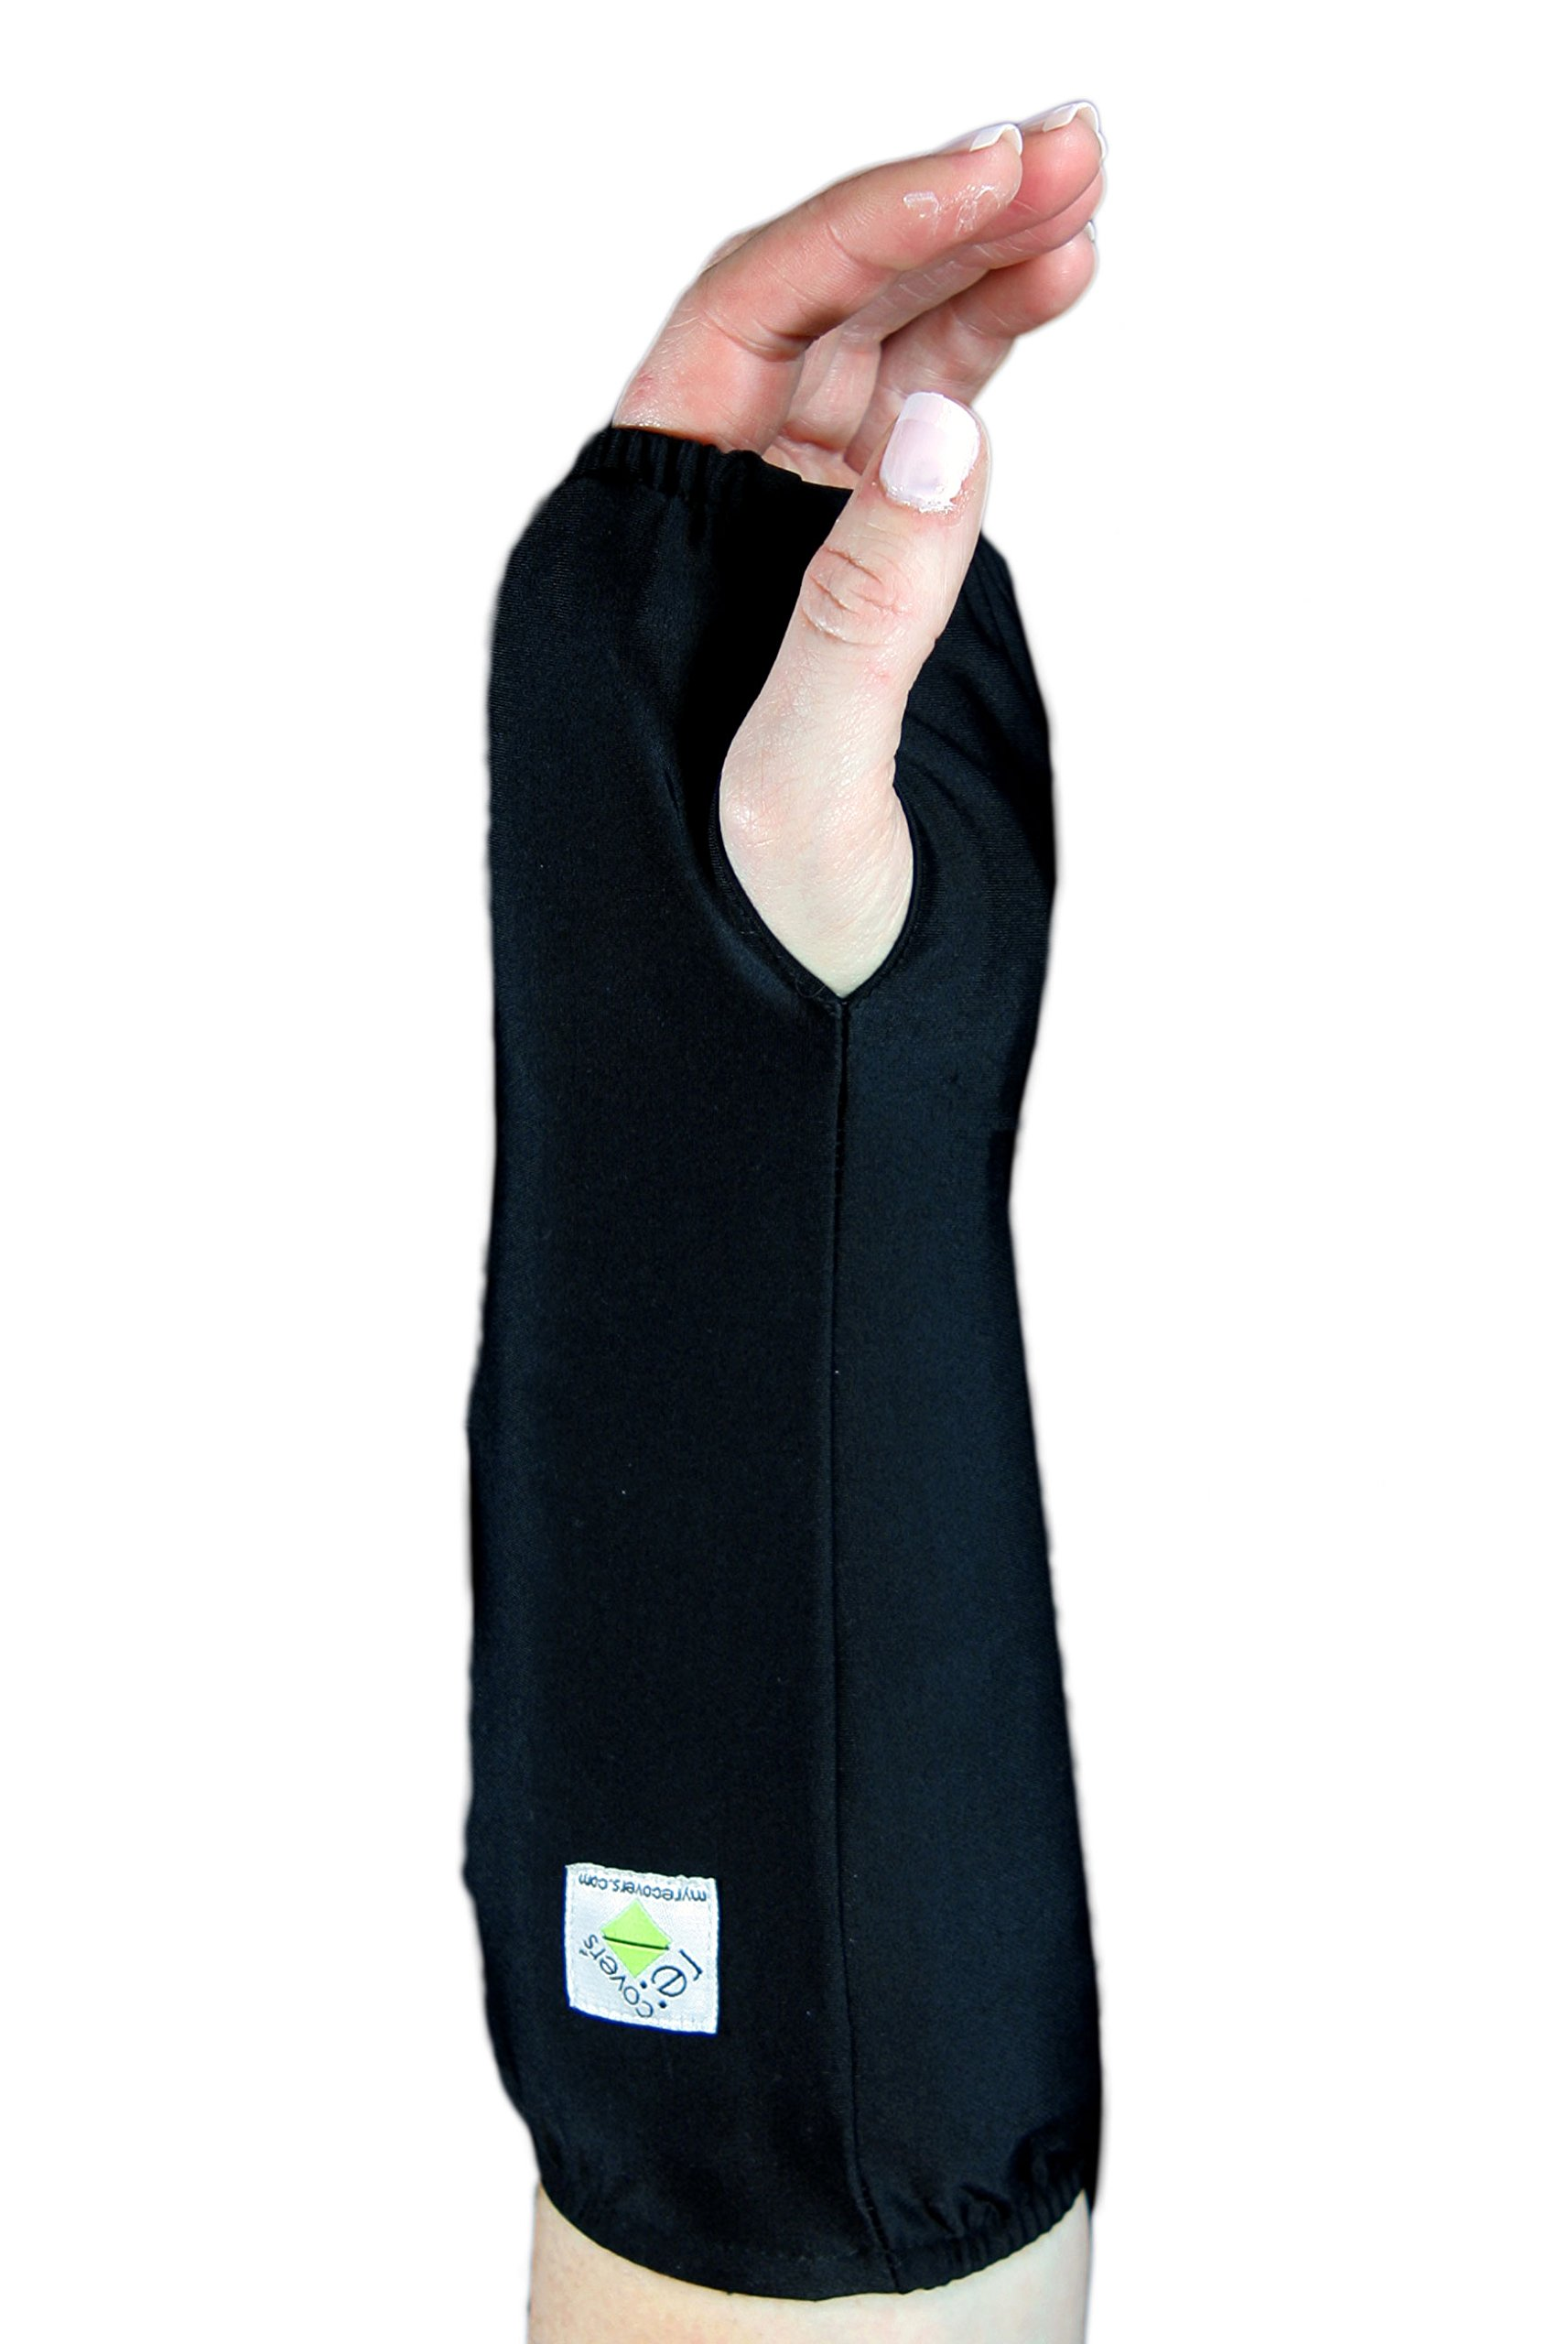 My Recovers Arm Cast Cover Protector, Fashion Cast Cover in Black for Short Arm Cast or Medical Wrist Brace, Made in USA, Orthopedic Products Accessories (Medium)